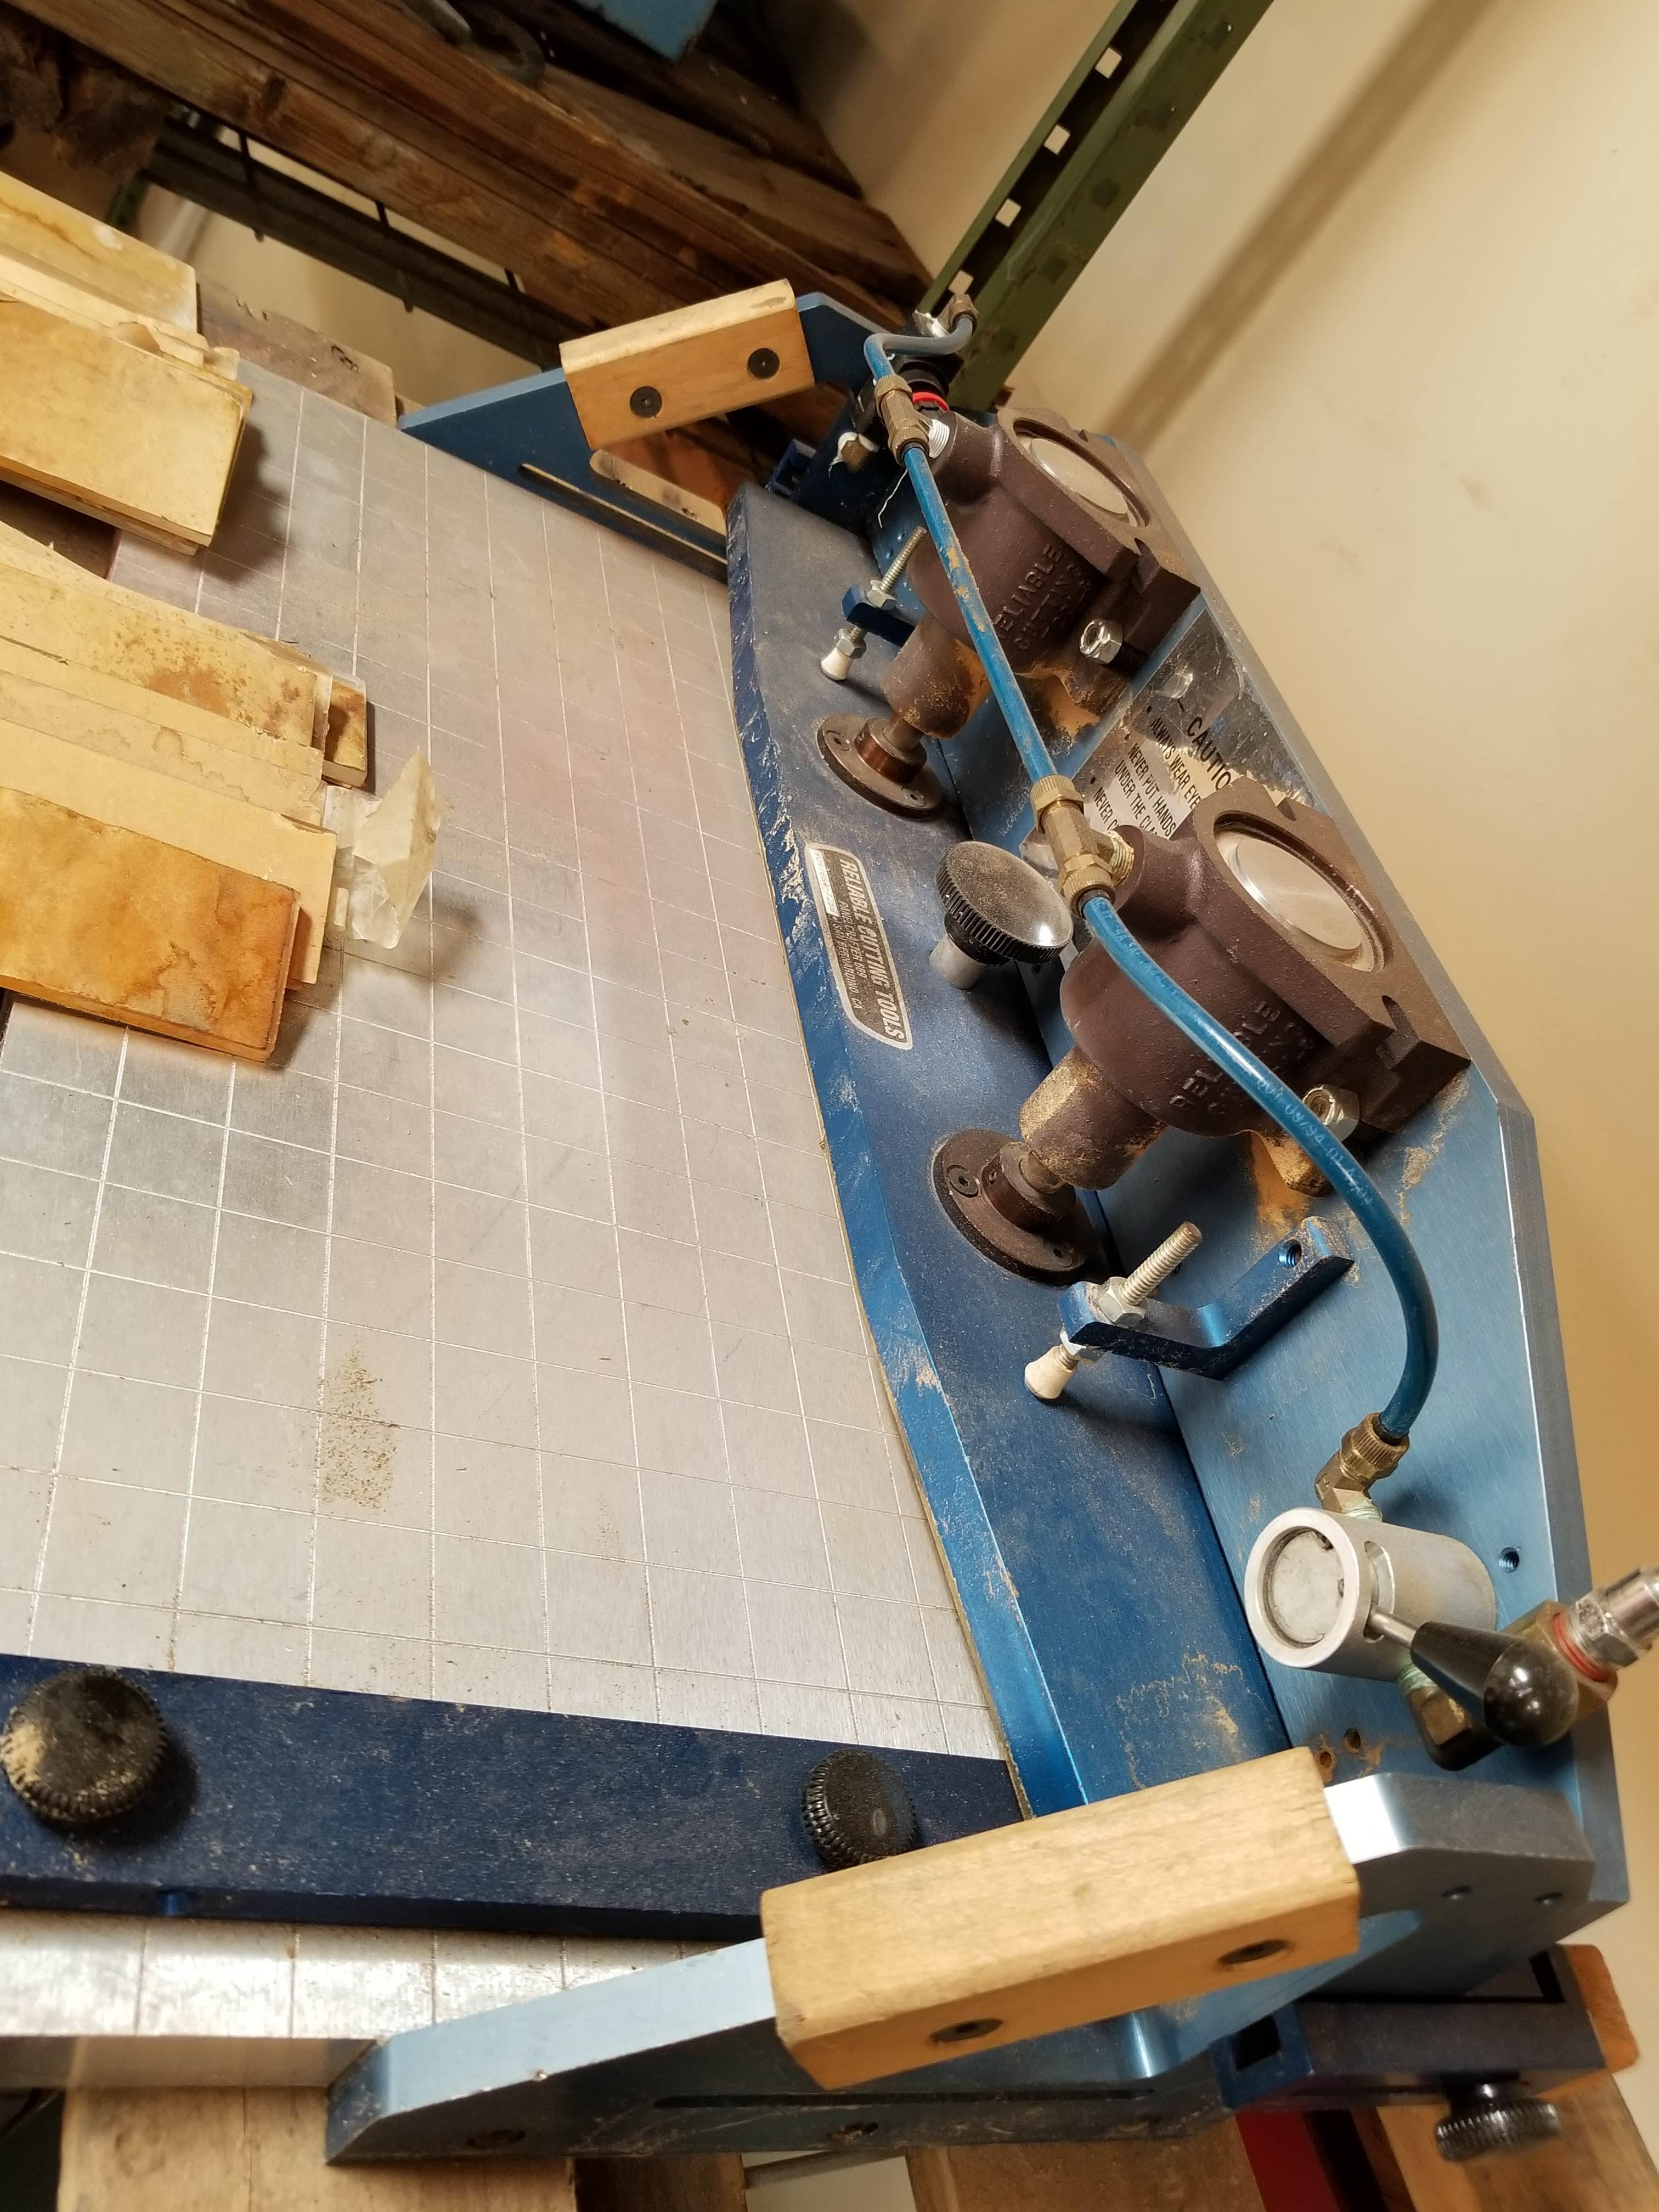 Reliable Cutting Tools Panelcrafter Model 609 with Templates - Image 3 of 4